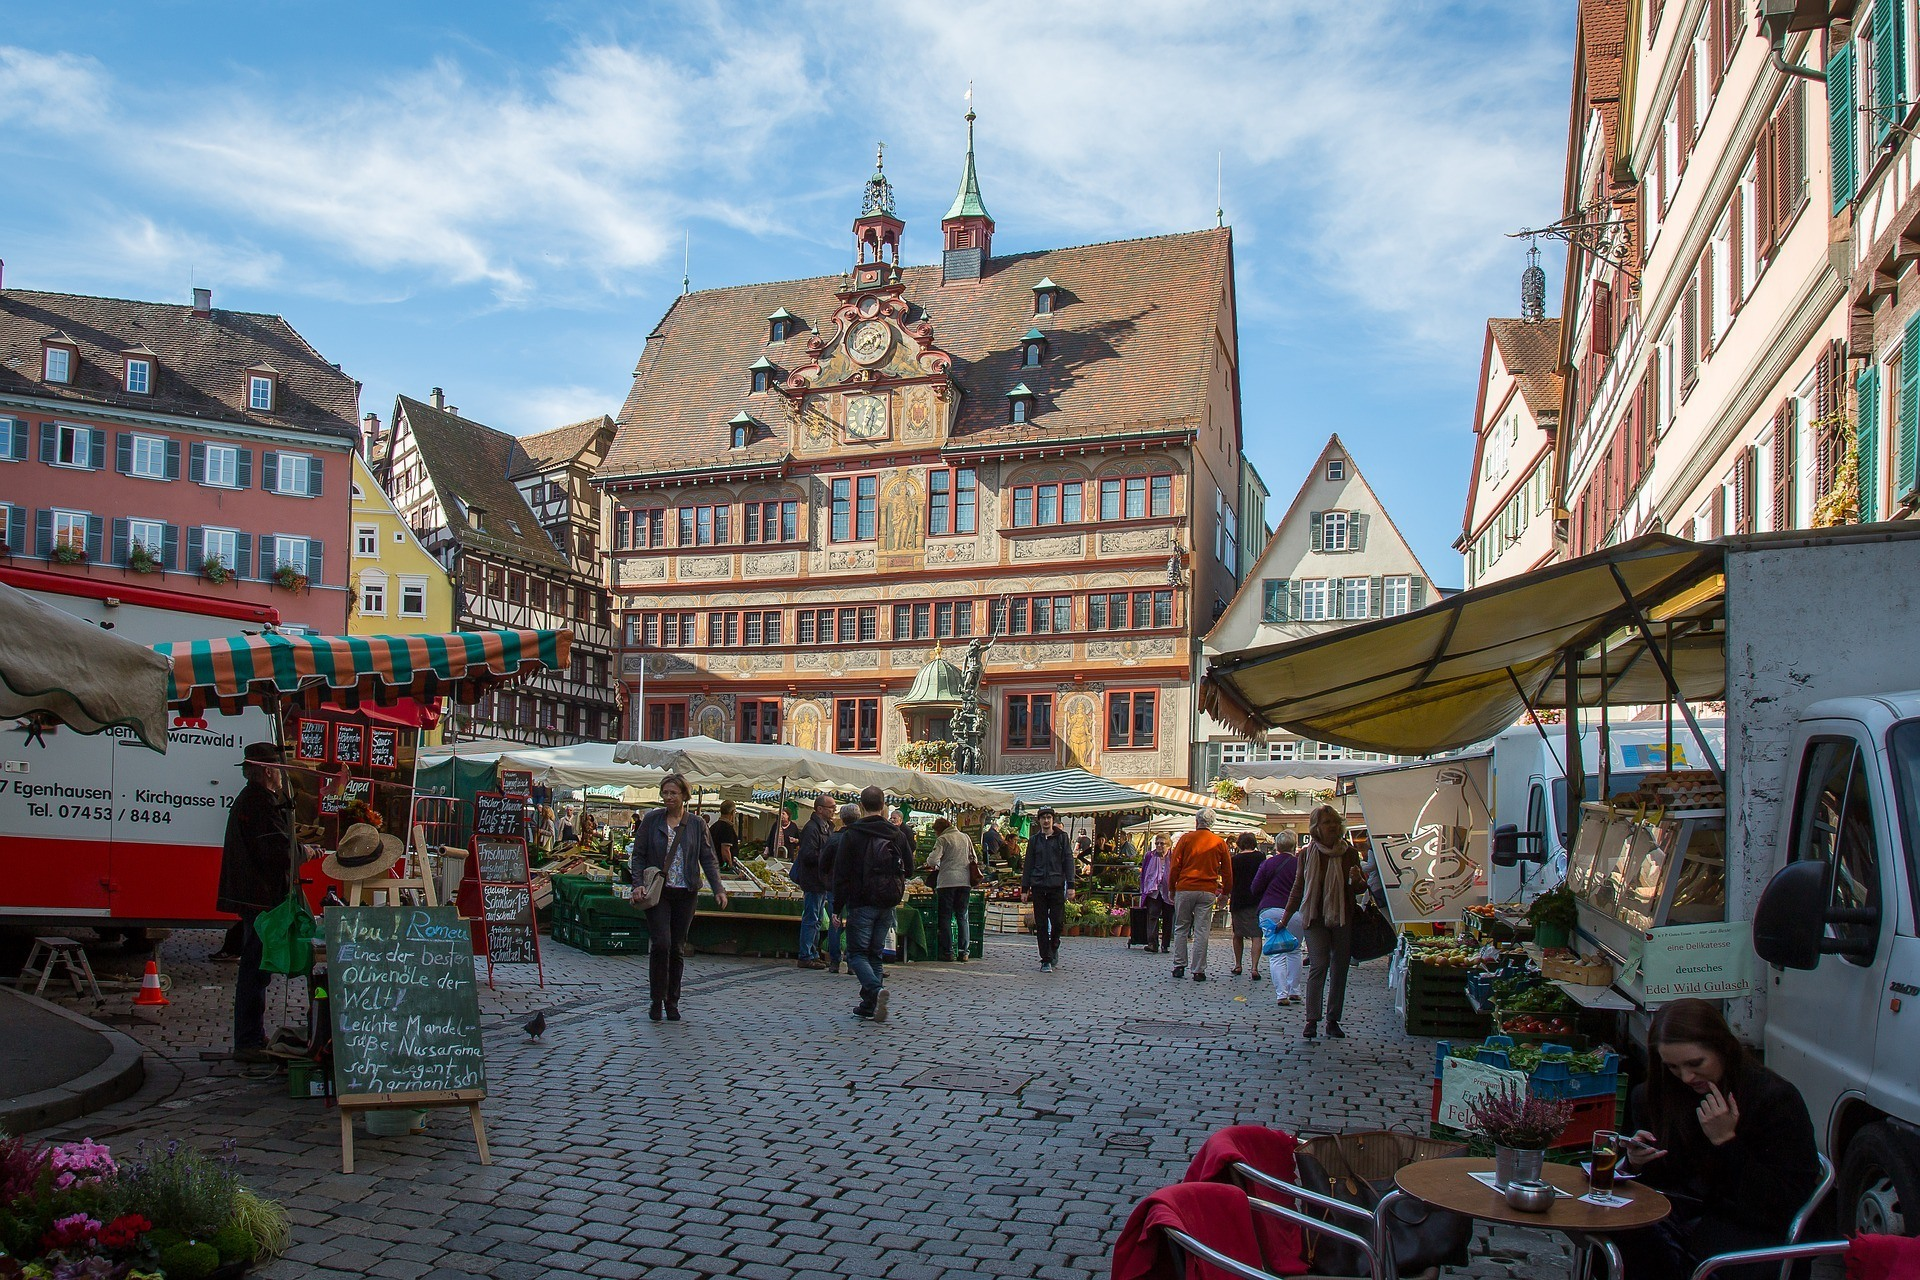 Rathaus in Tübingen Germany Photo: Maxmann on Pixabay